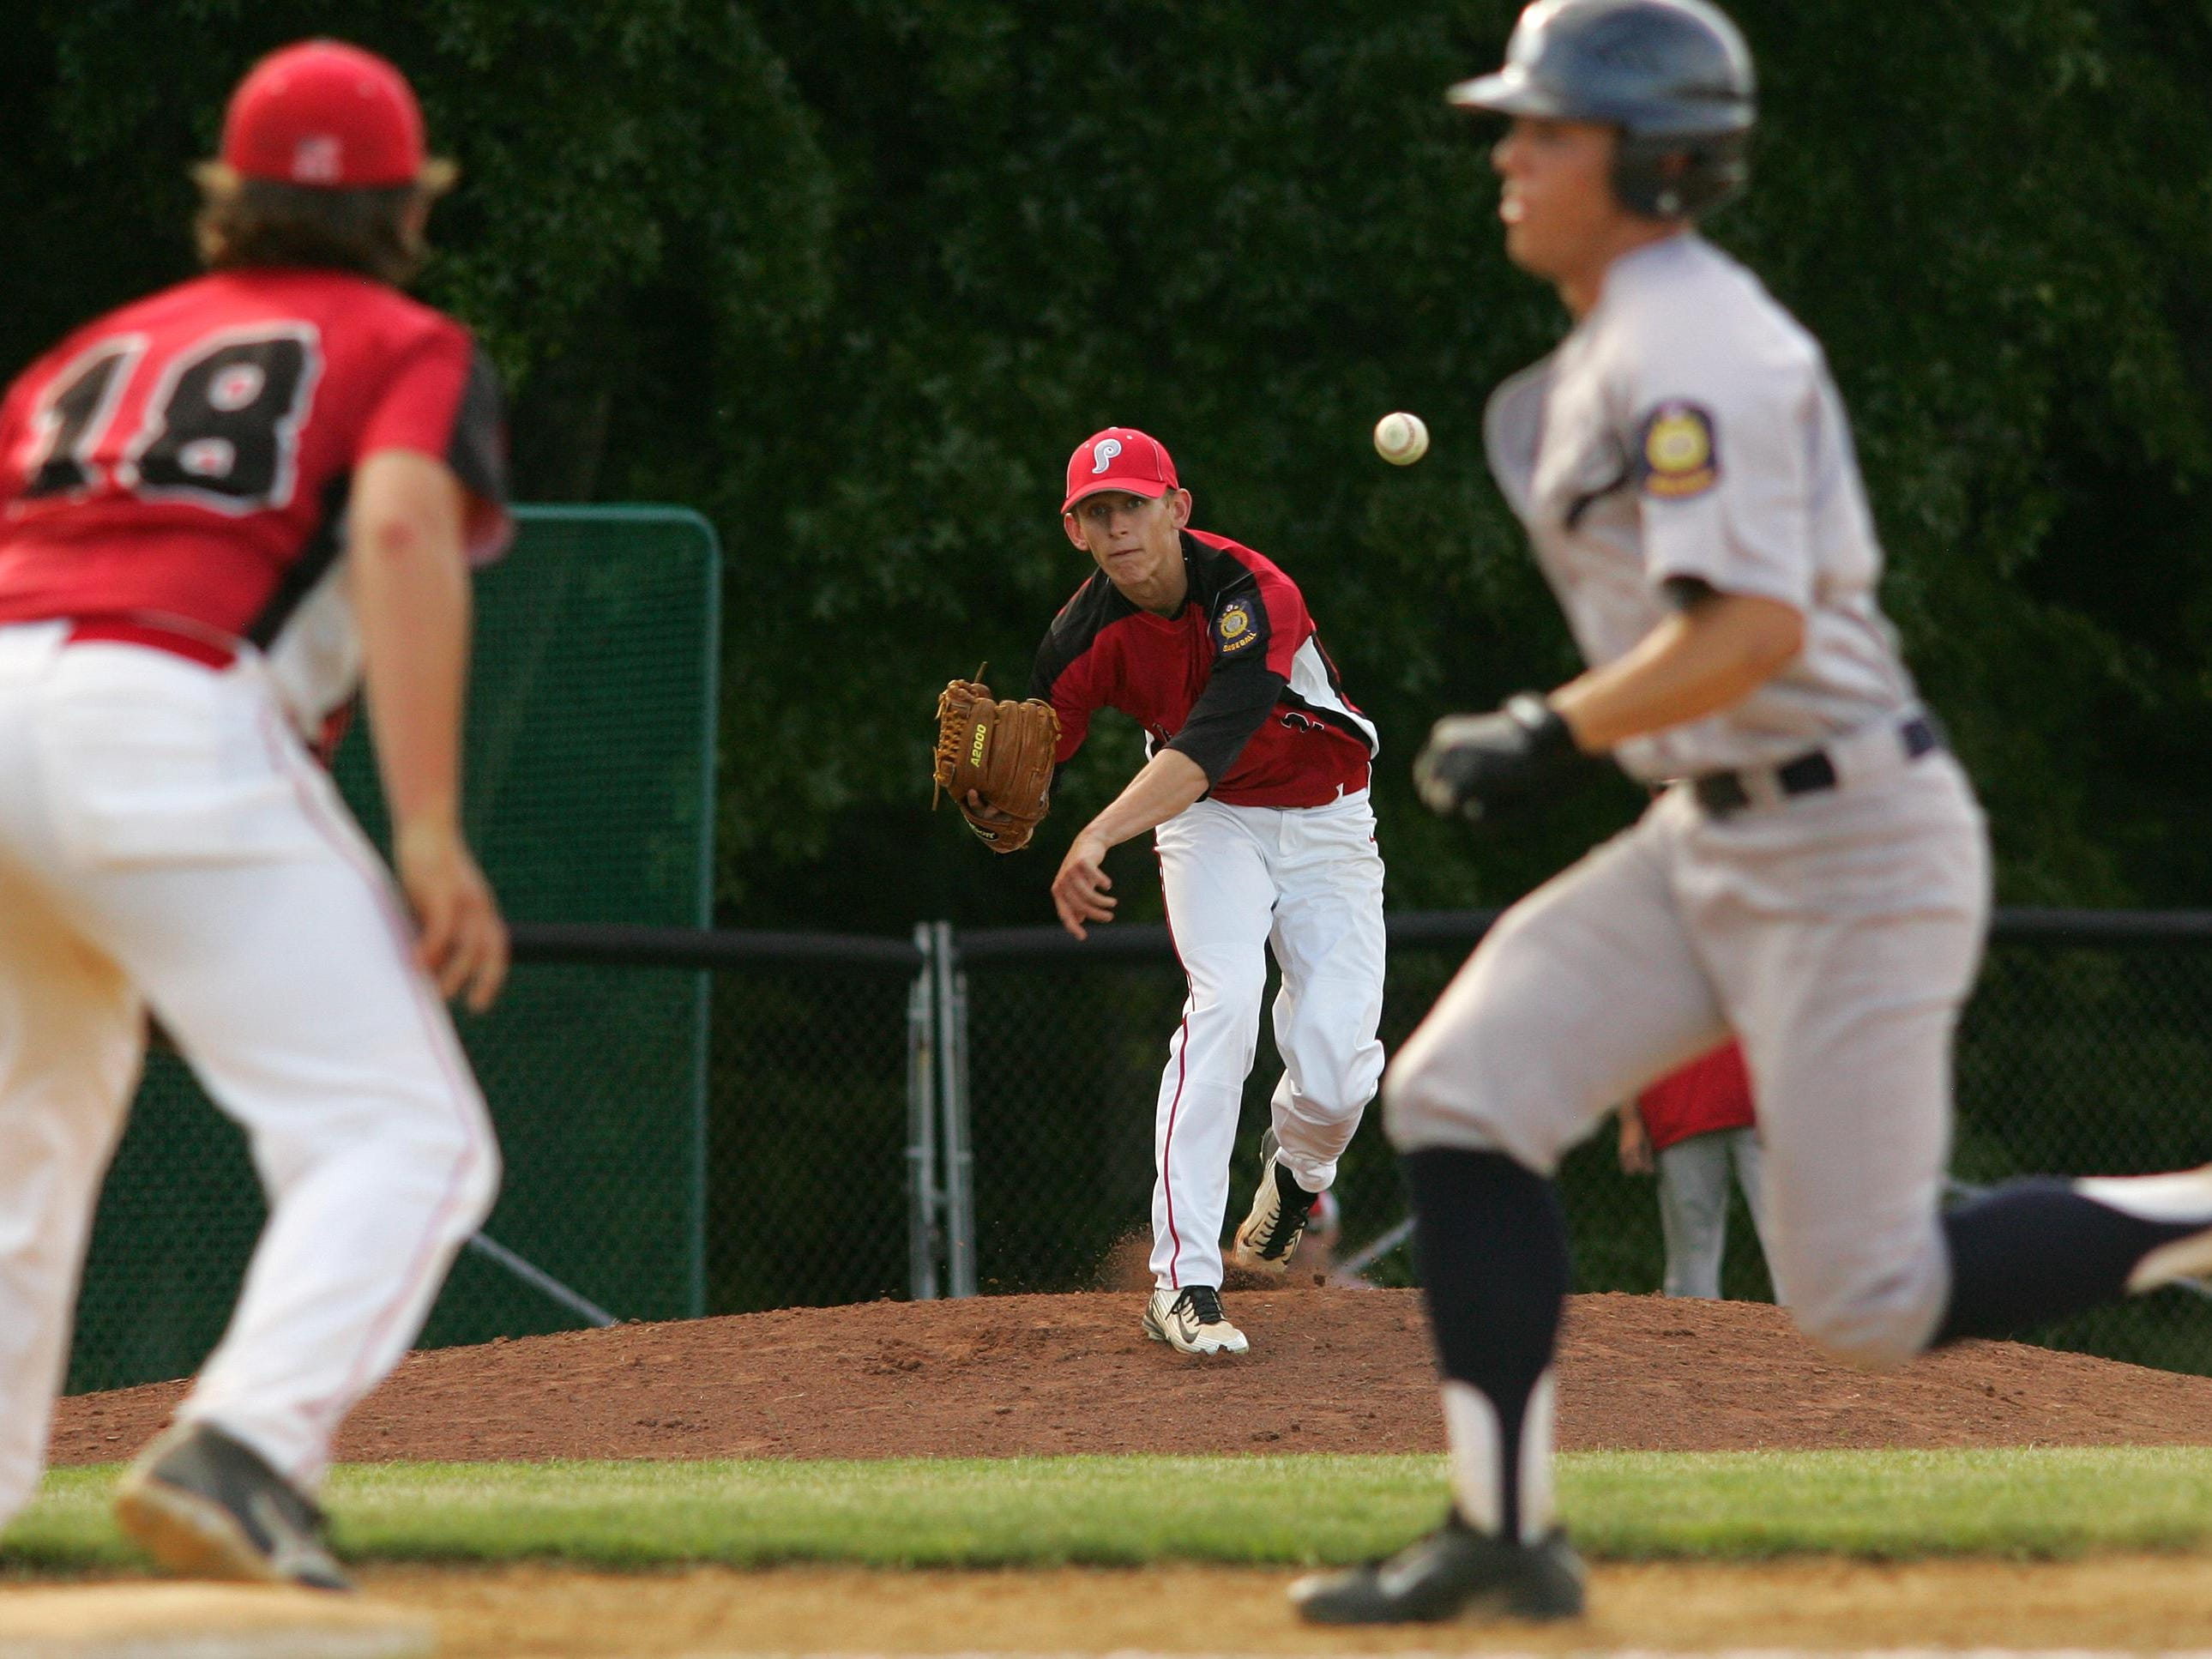 Pickerington Post 283 pitcher Cole Music makes a pickoff throw to teammate Doug Connor June 24 during the team's 12-2 victory against Lancaster Post 11. Music and Connor are two of four Watkins Memorial players on the team.